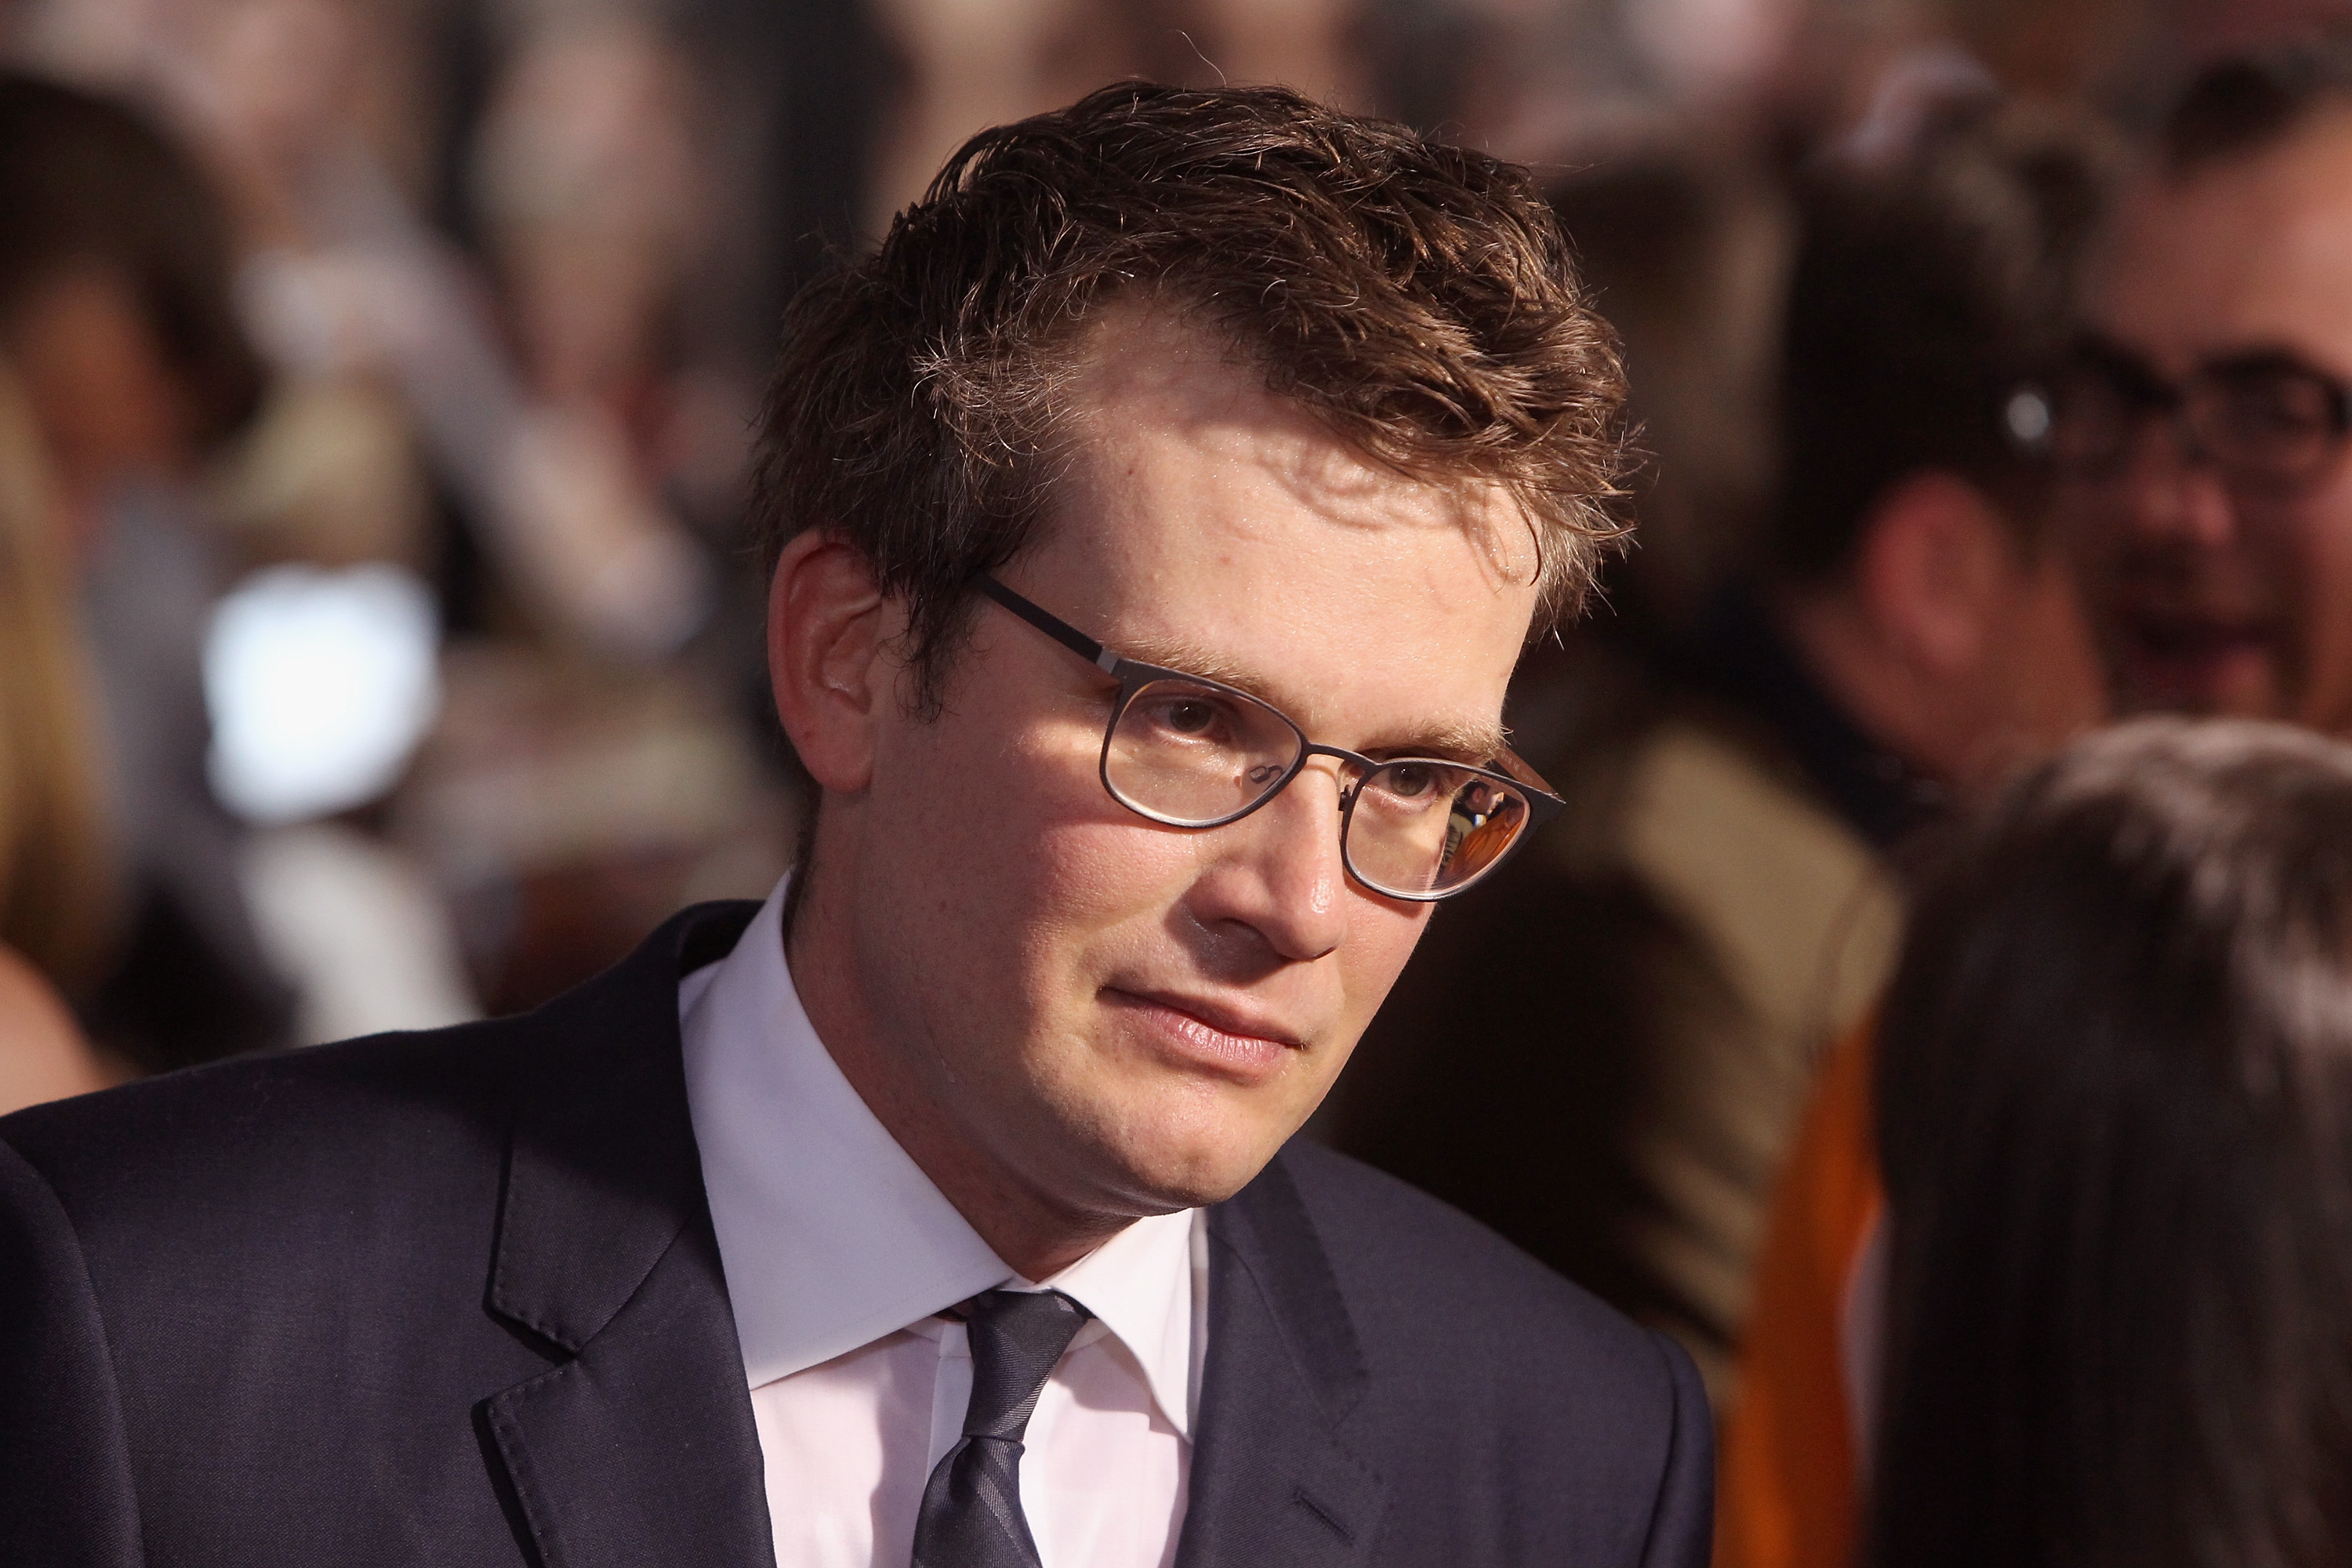 Author/producer John Green attends the  Paper Towns  New York premiere at AMC Loews Lincoln Square on July 21, 2015 in New York City.